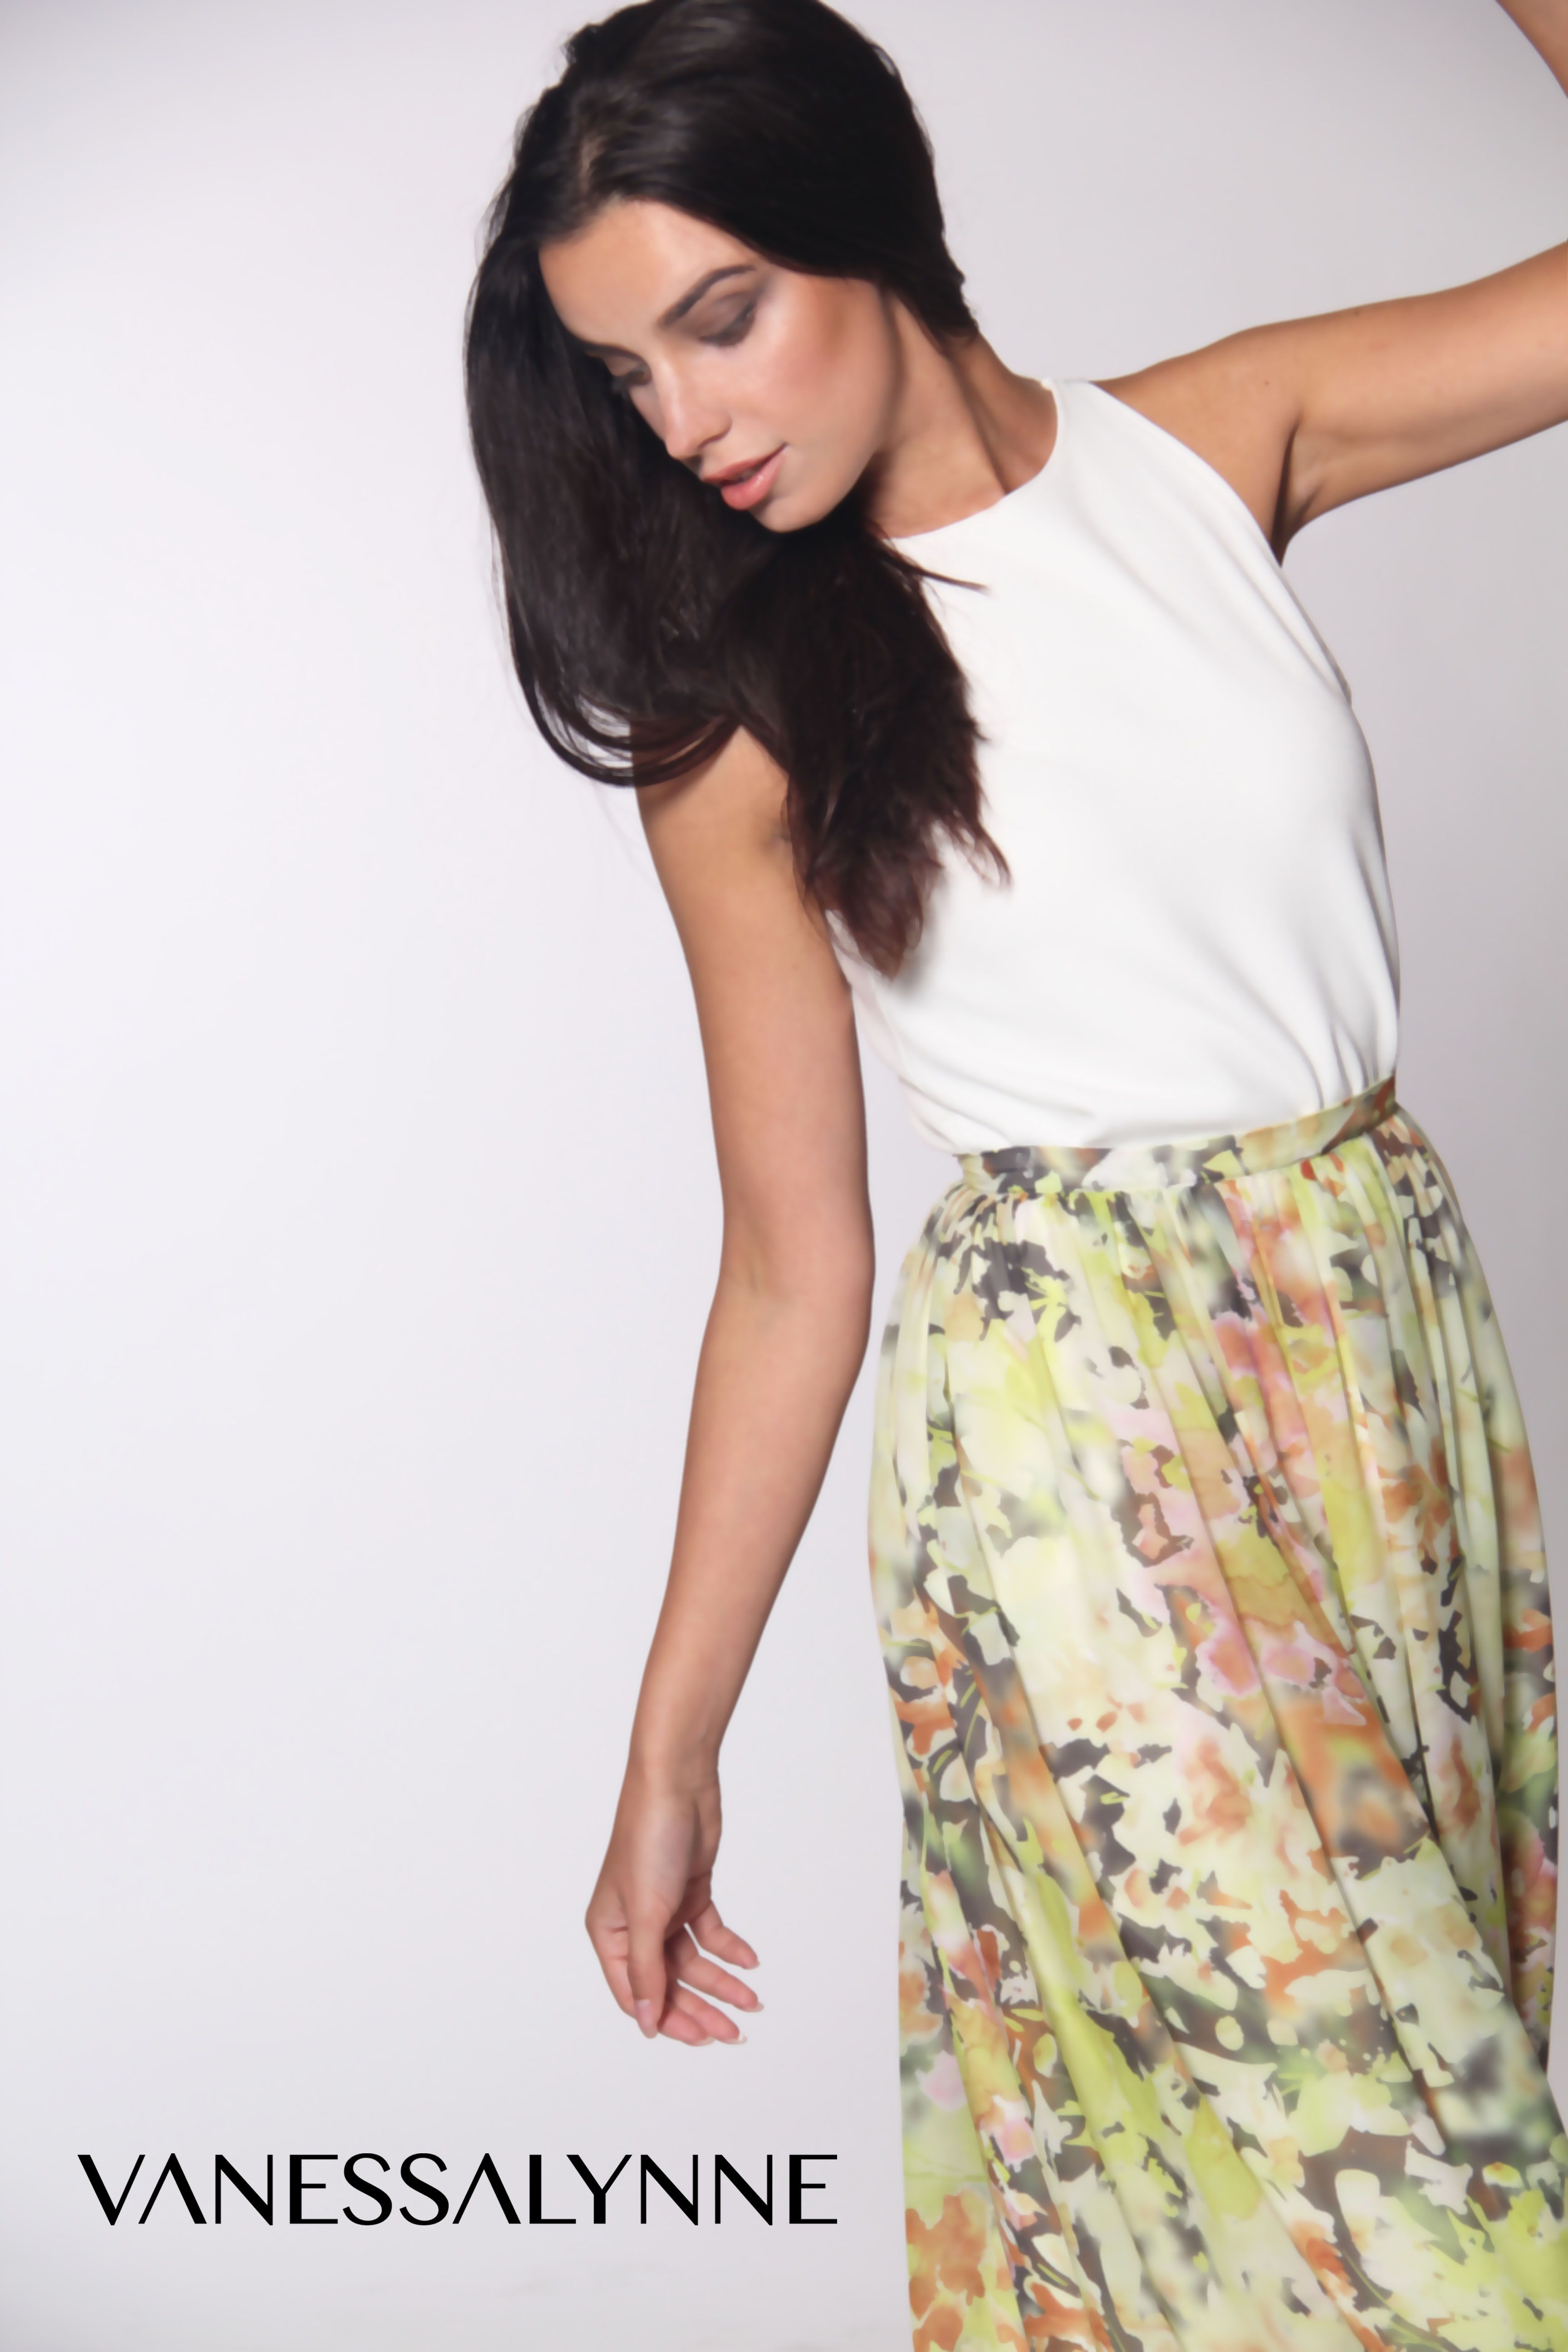 Summer fashion! Floral Maxi Skirt available now on www.vanessalynne.com.  #spring #summer #fashion #designer #availablenow #floral #maxi #skirt #beautiful #style